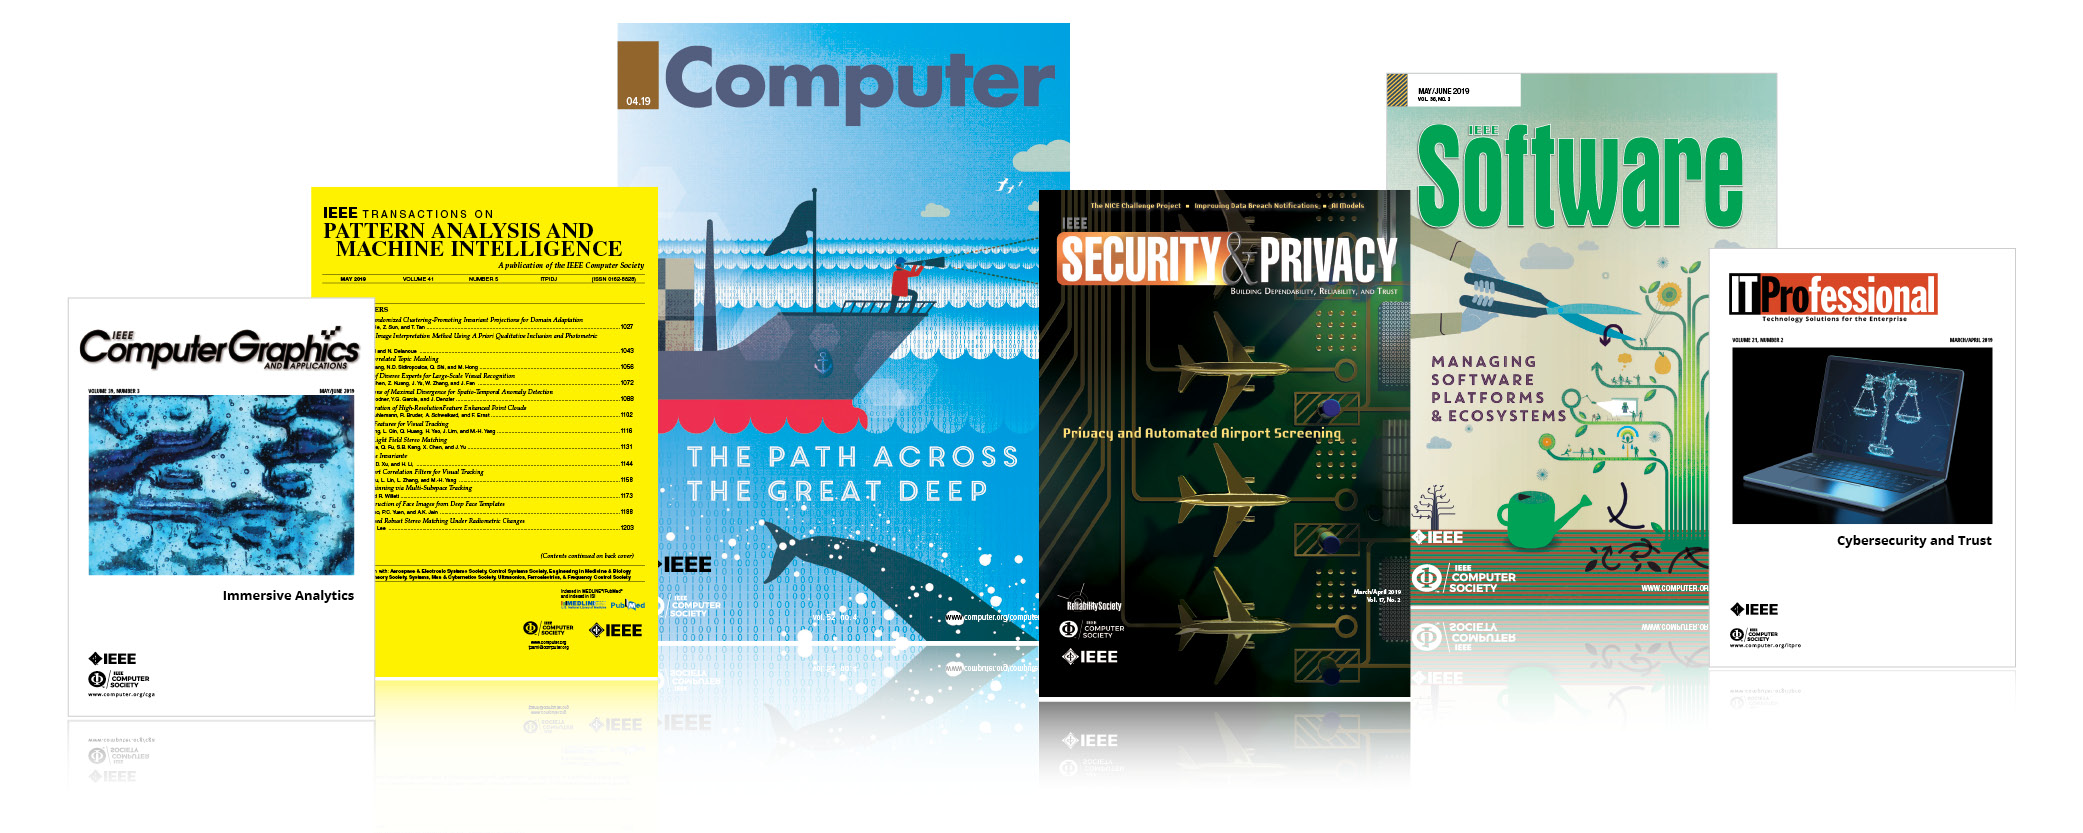 Computer Society publications